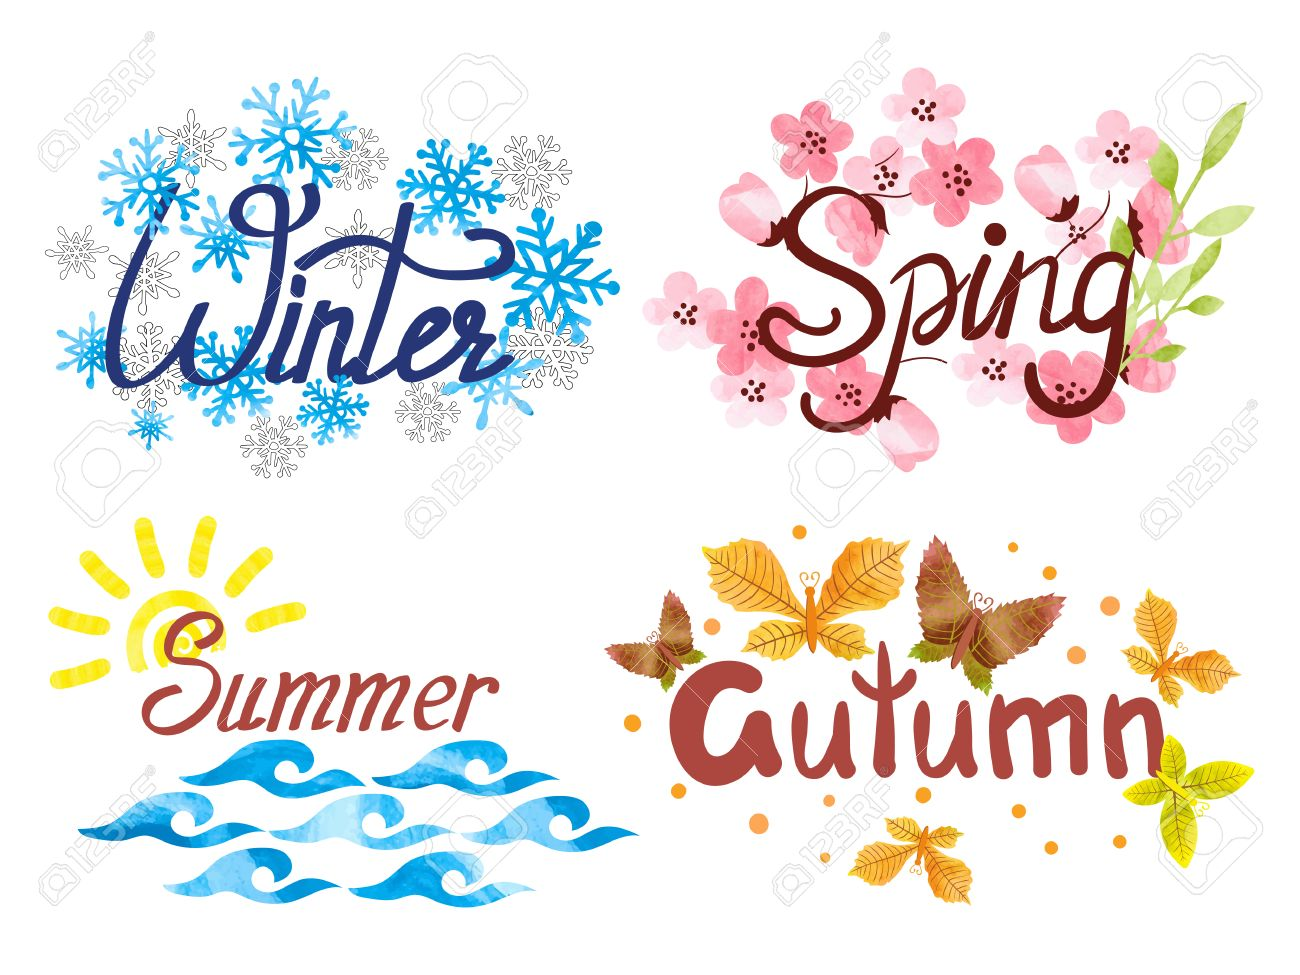 Spring Summer Fall Winter Clipart.